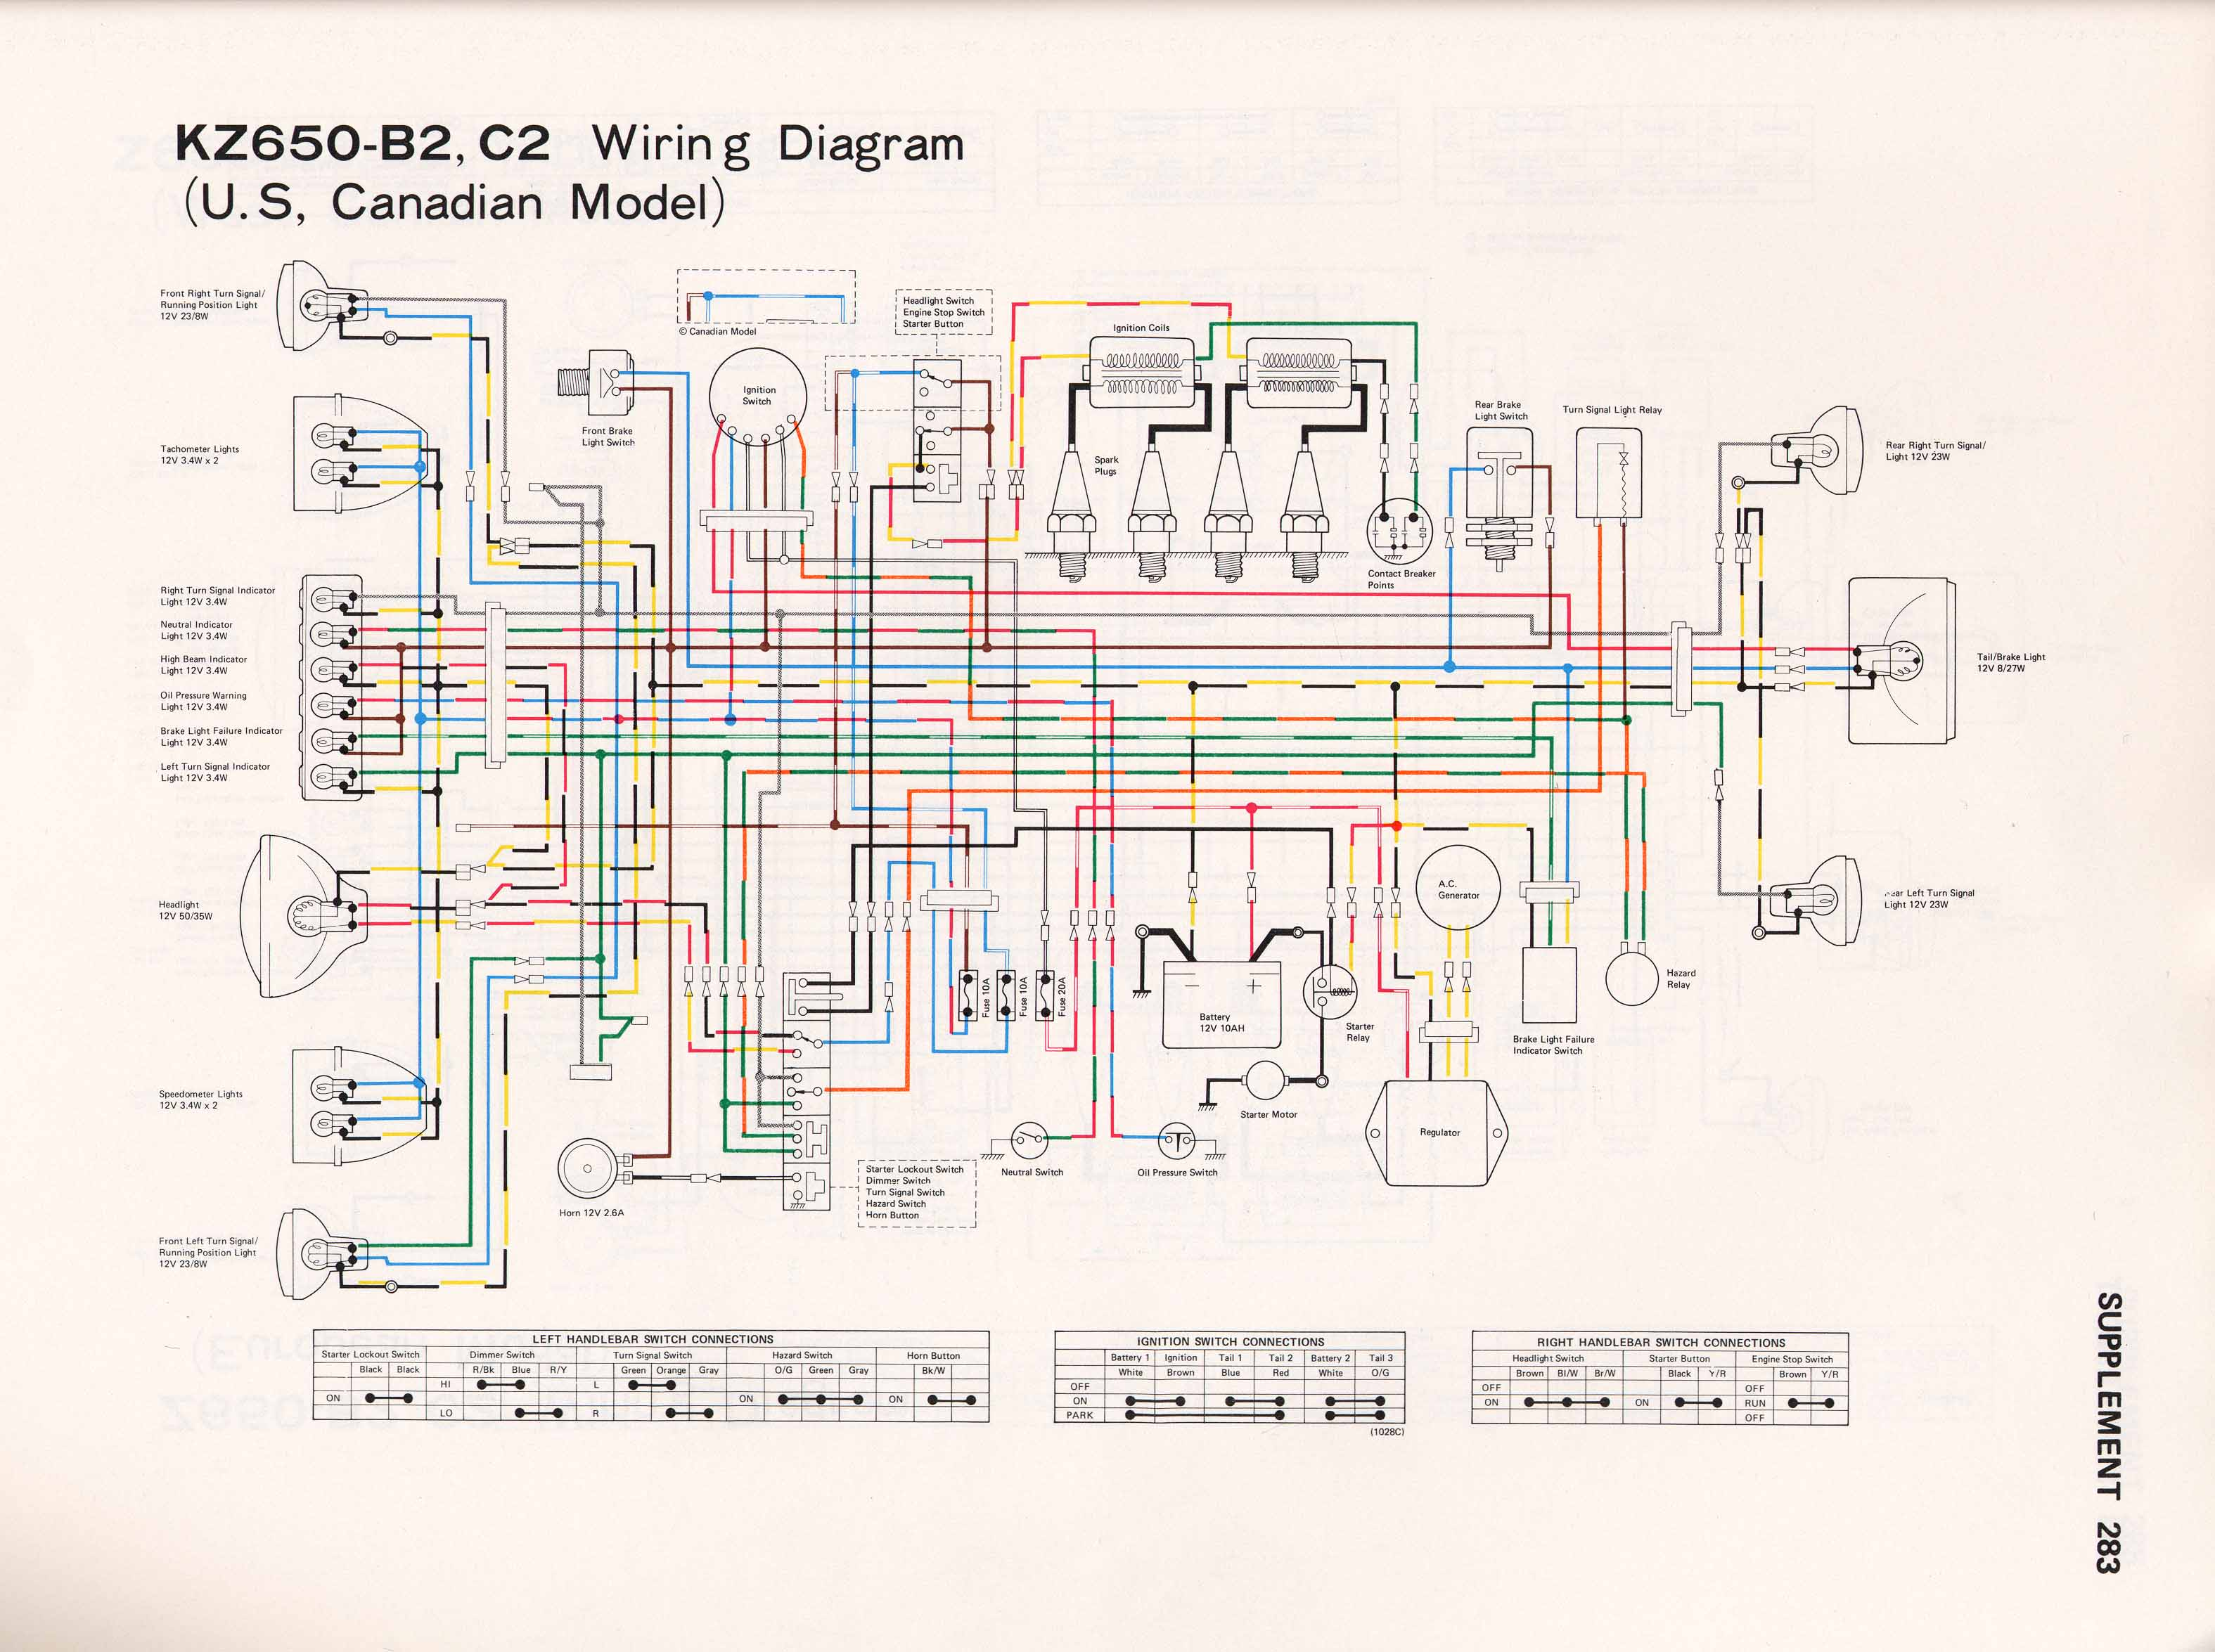 WiringDiagrams on kawasaki ninja 250 wiring diagram 2013